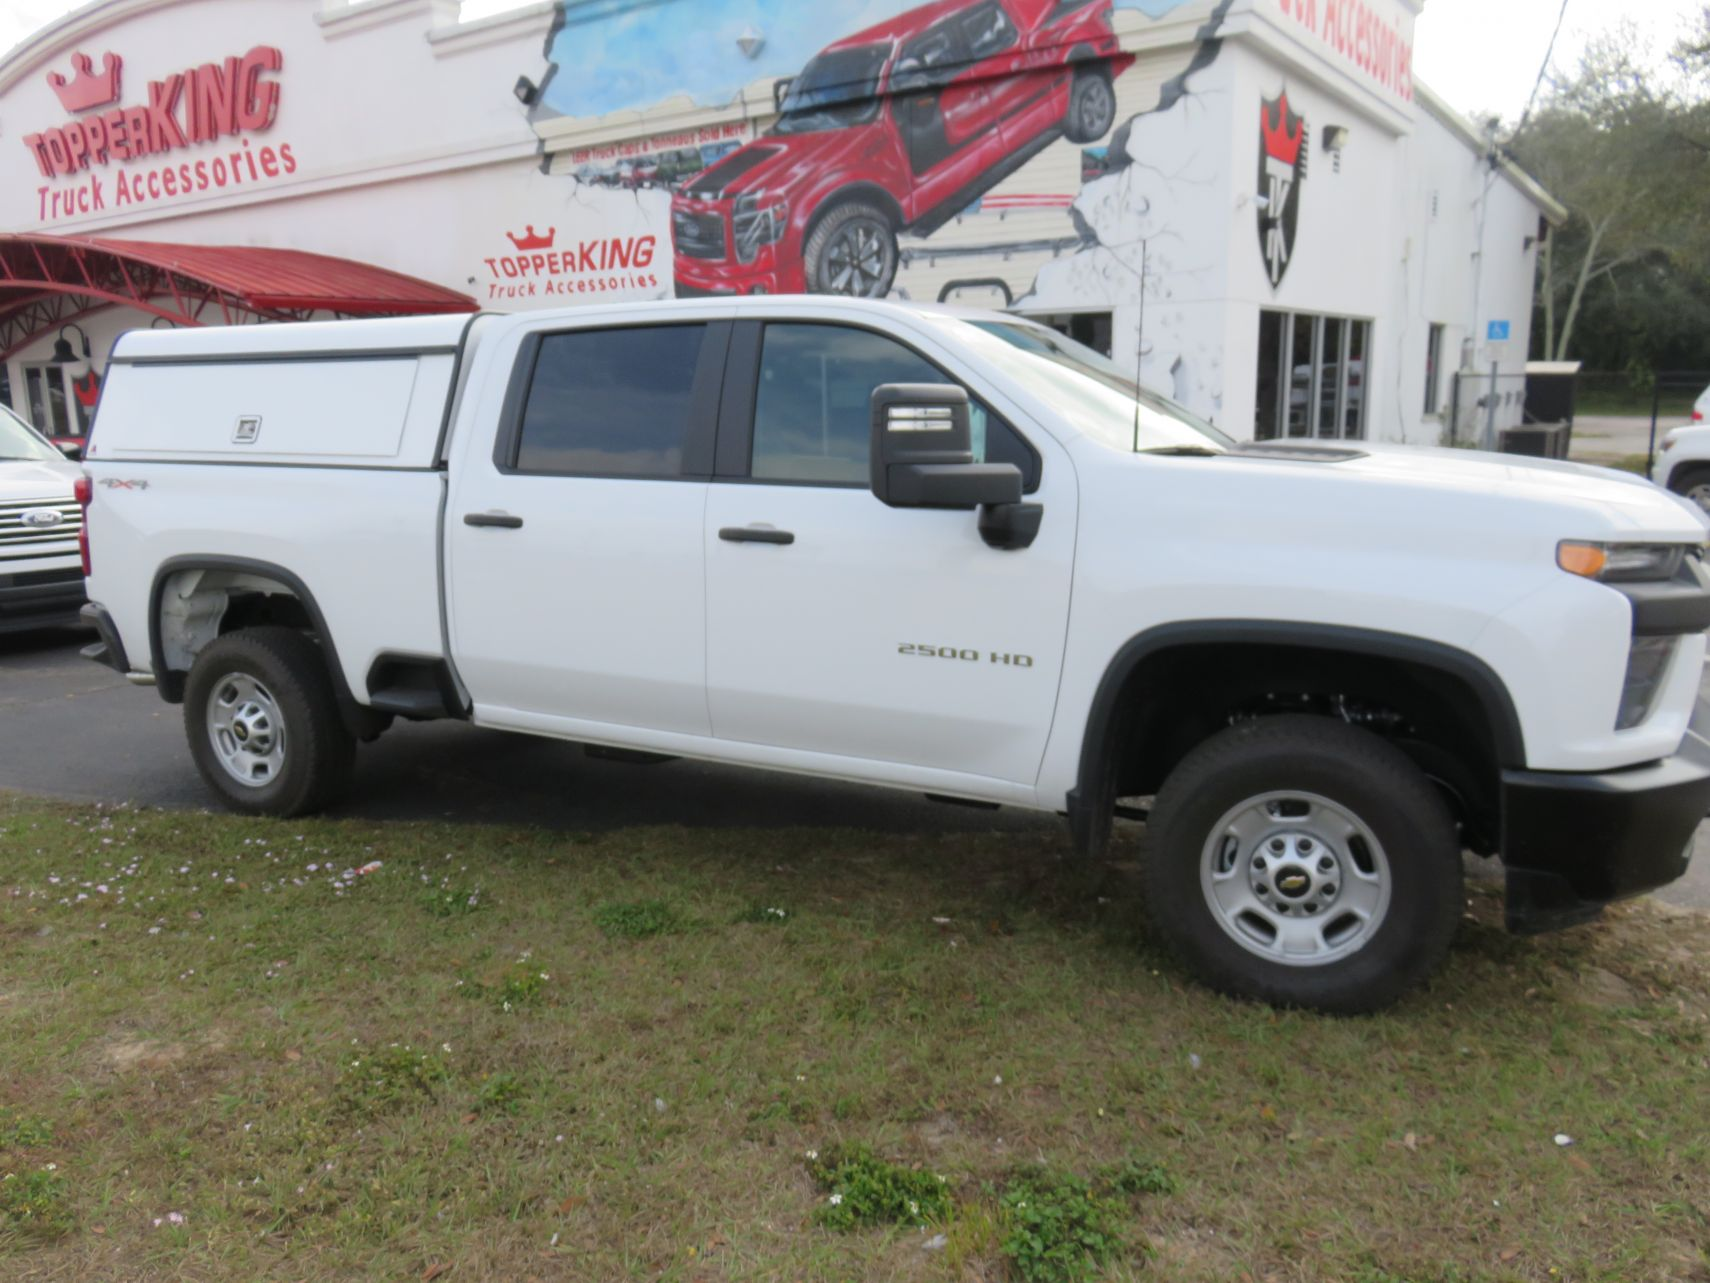 2020 Chev Silverado with LEER DCC, Full Back Door, Side Access, Hitch by TopperKING Brandon 813-689-2449 or Clearwater FL 727-530-9066. Call!